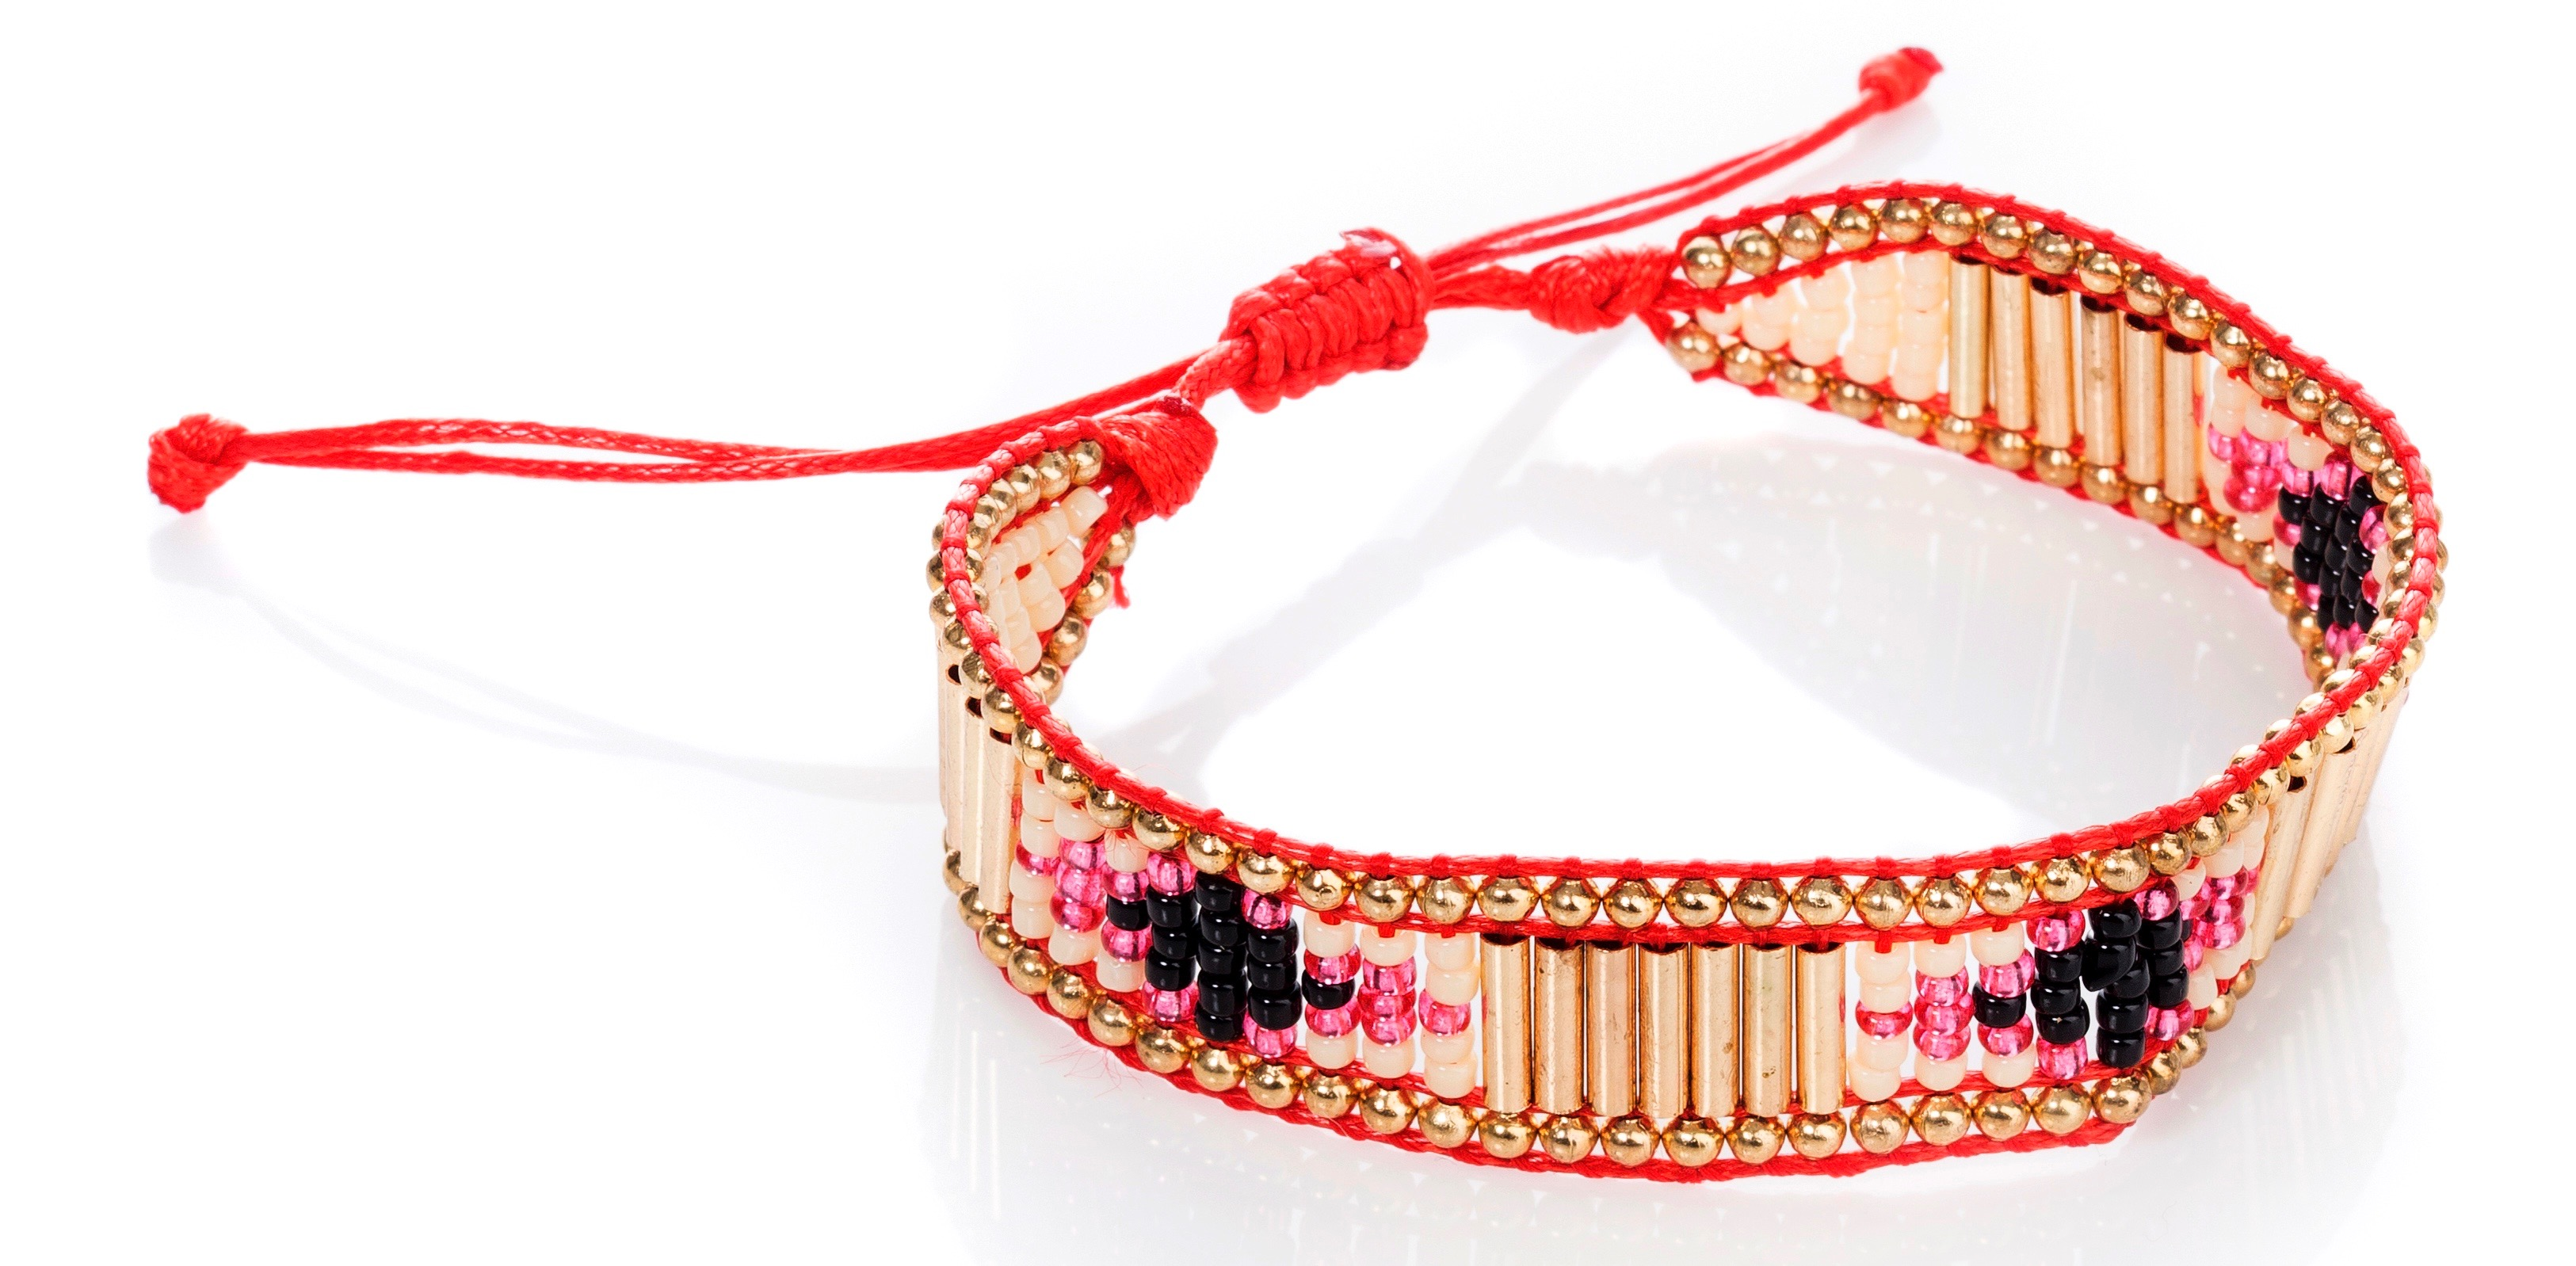 Exclusive by AMUST Bohemian bracelet small_ red DKK 199 NOK 259 SEK 259 EUR 27